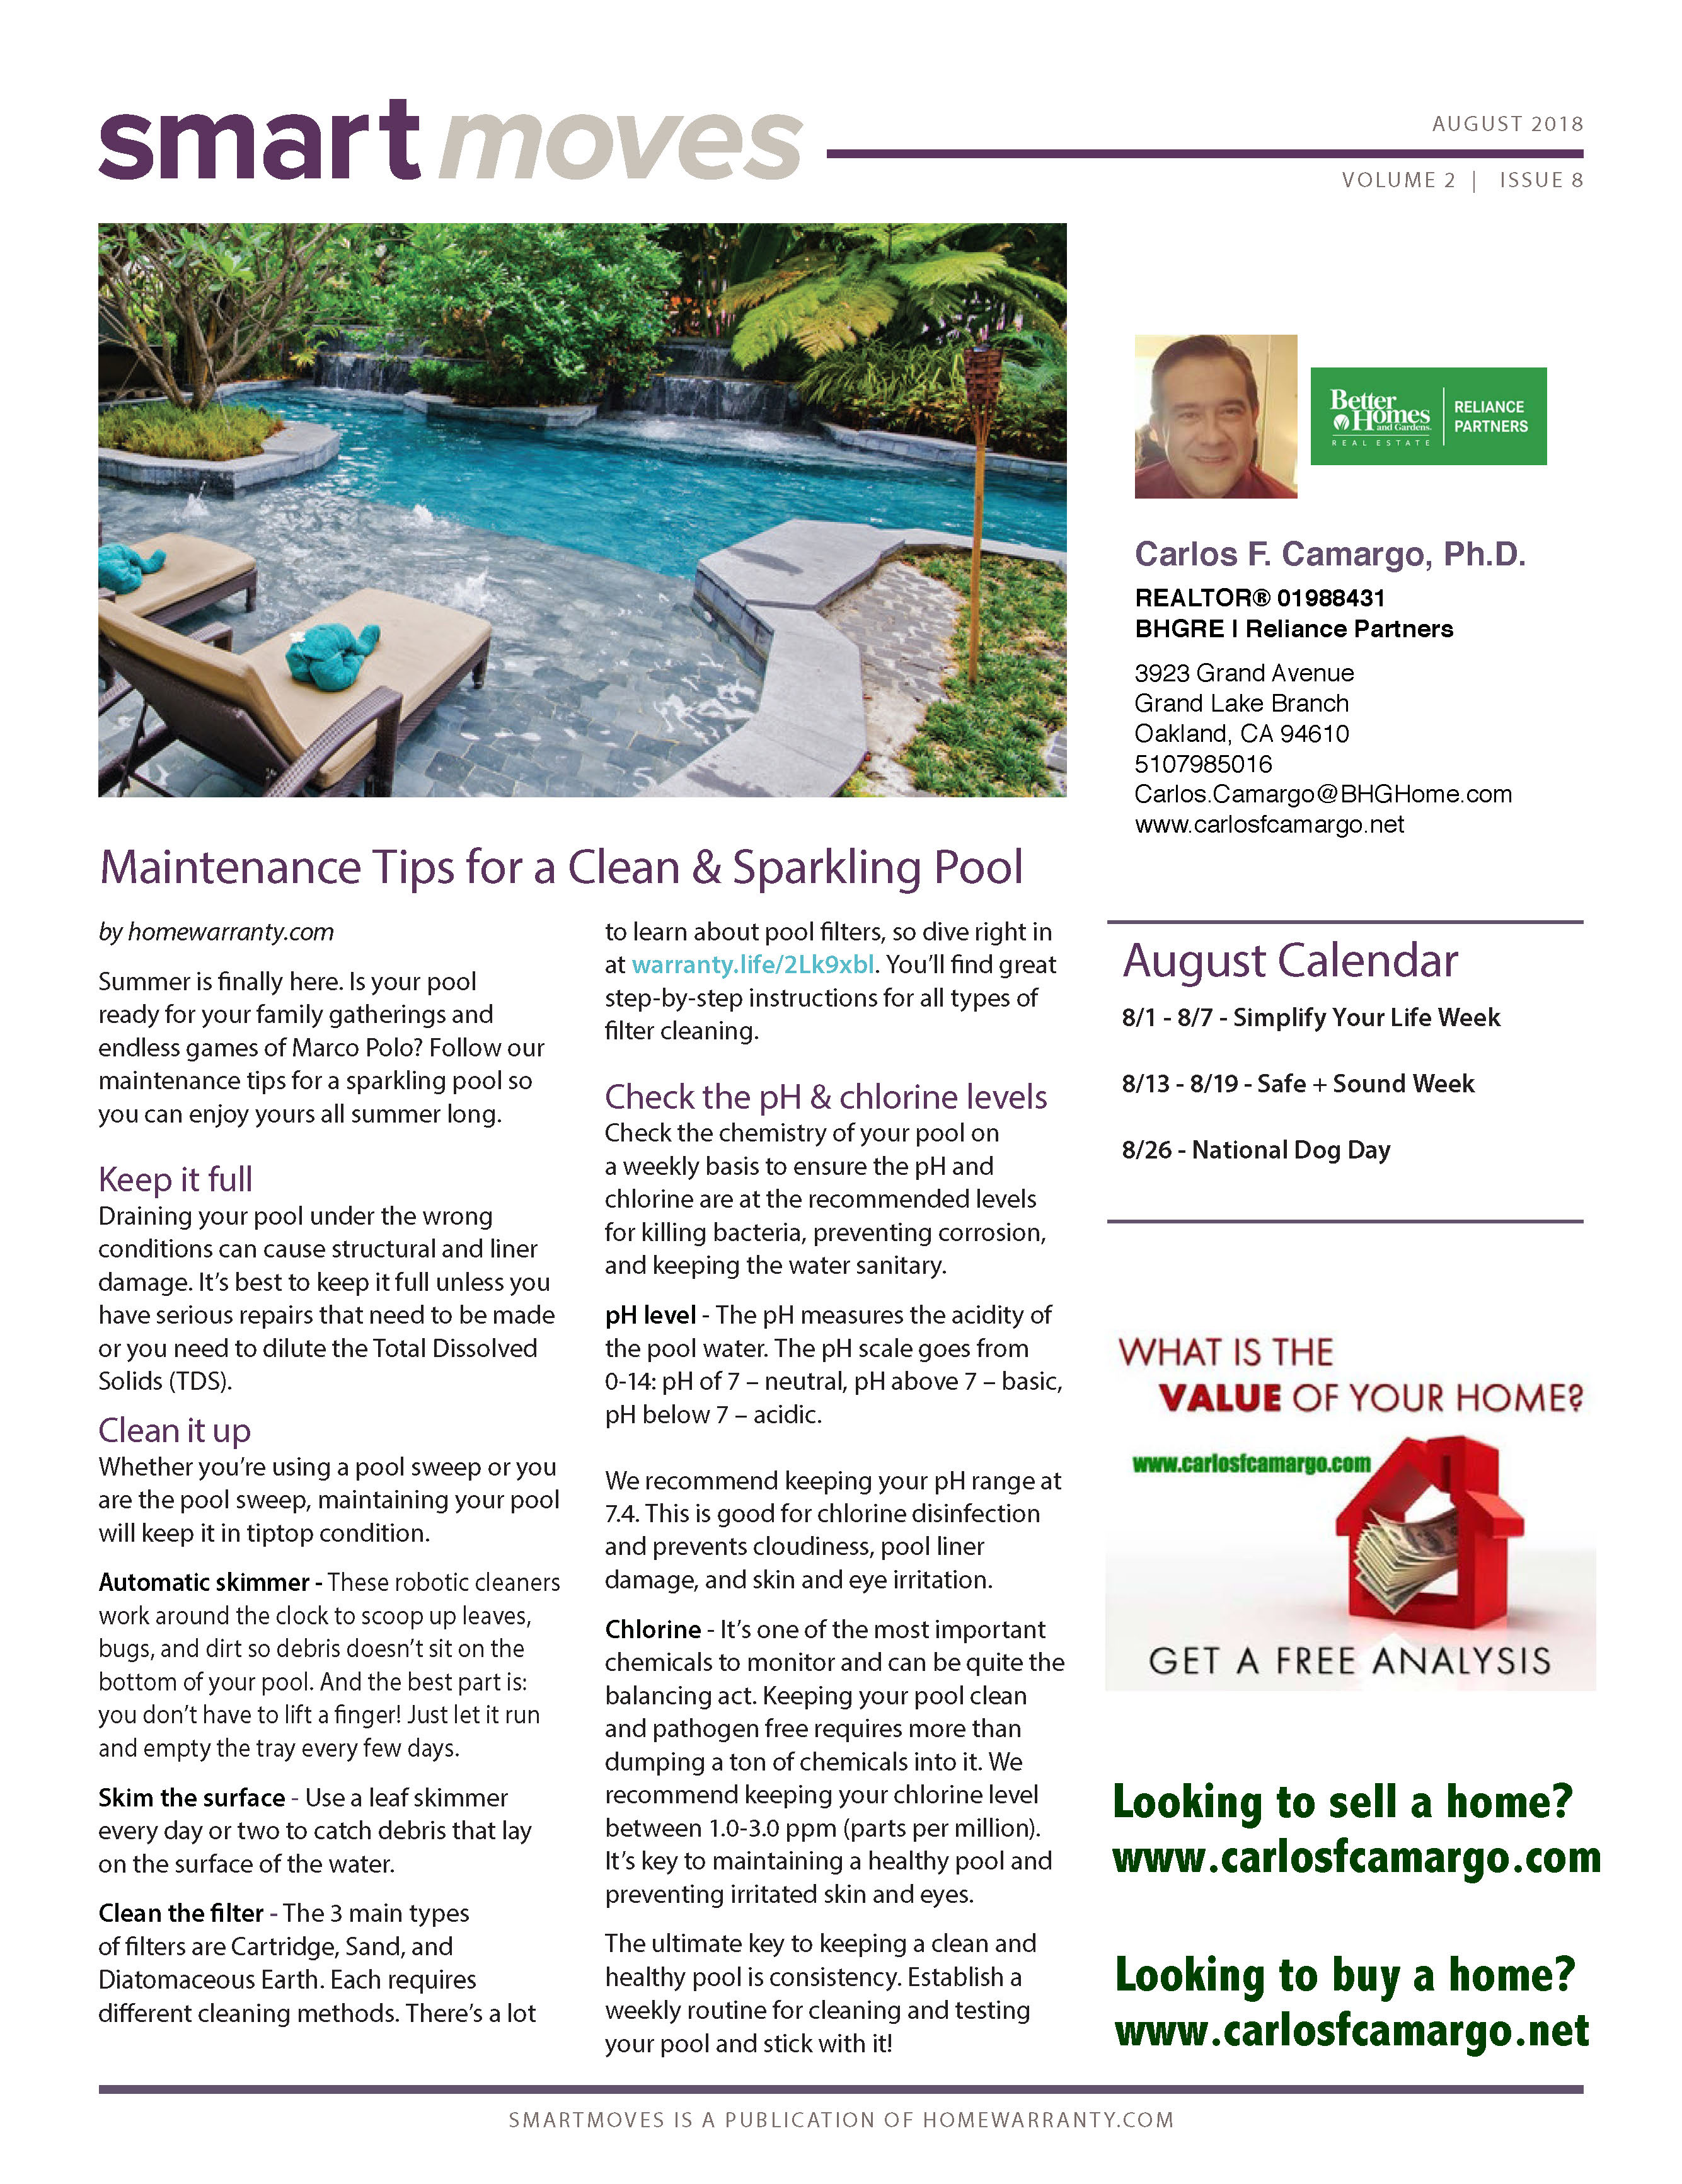 smart moves newsletter july august 2018 noplacelikehome eastbay